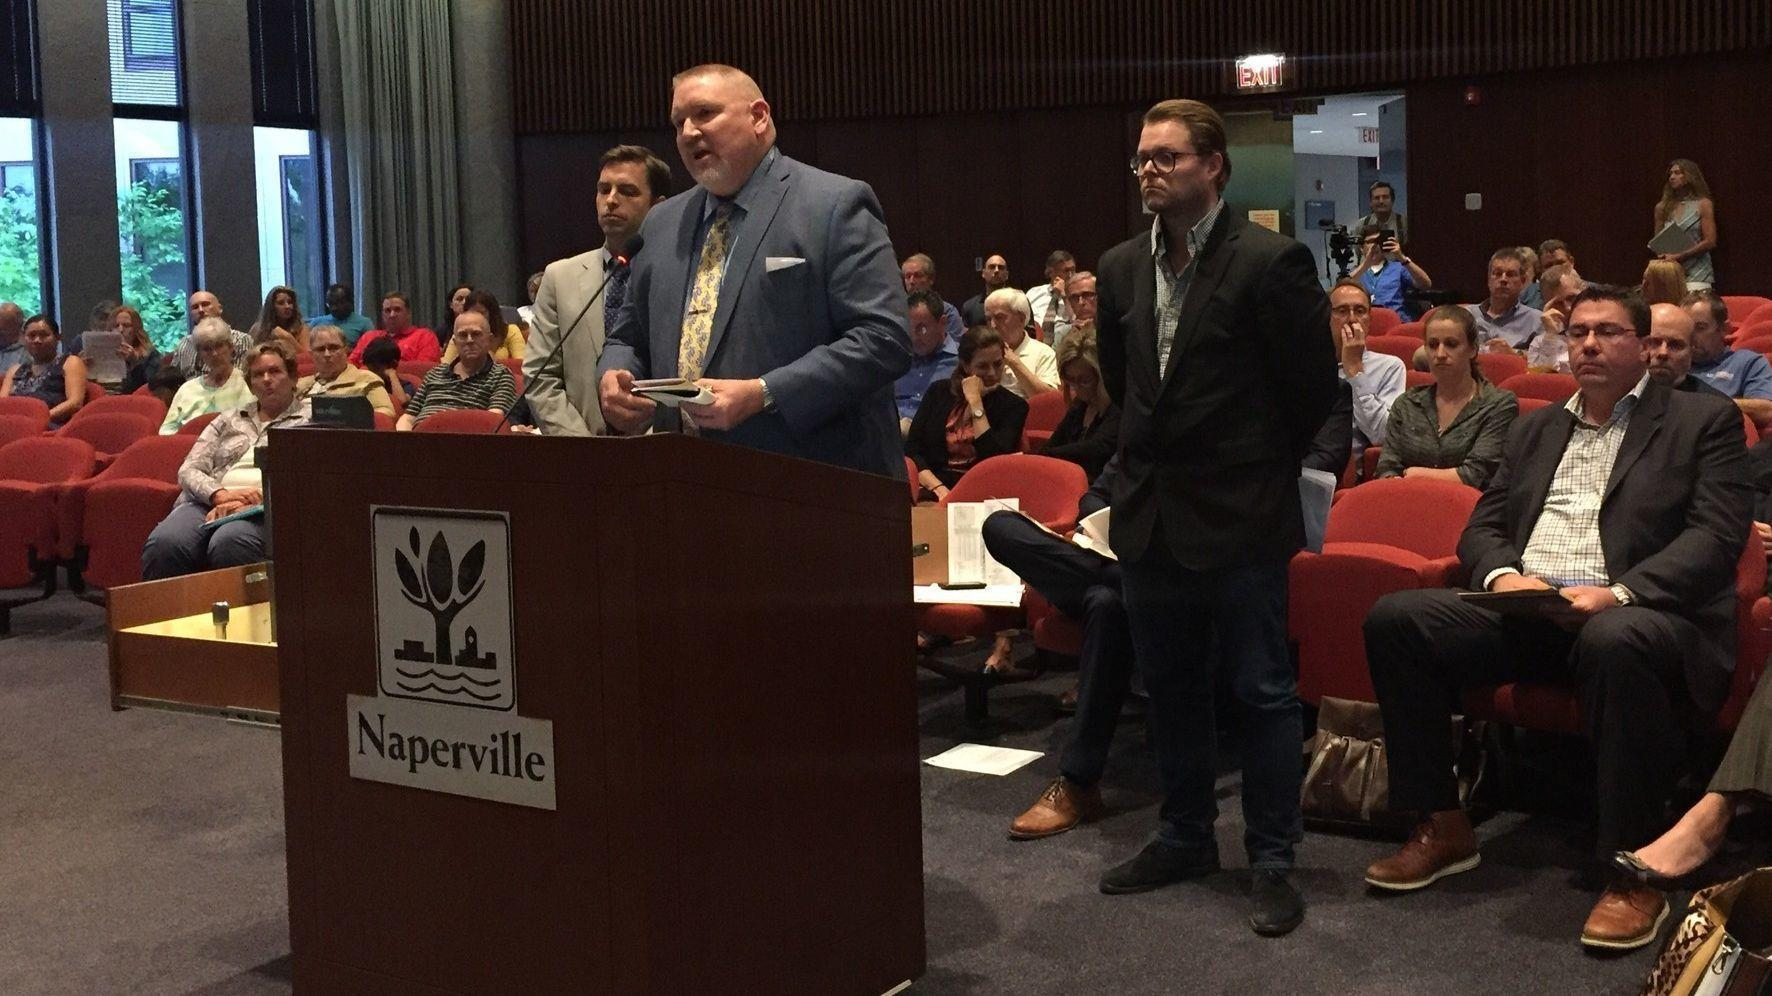 Hockey/entertainment center north of I-88 a 'great addition' to Naperville, commission says